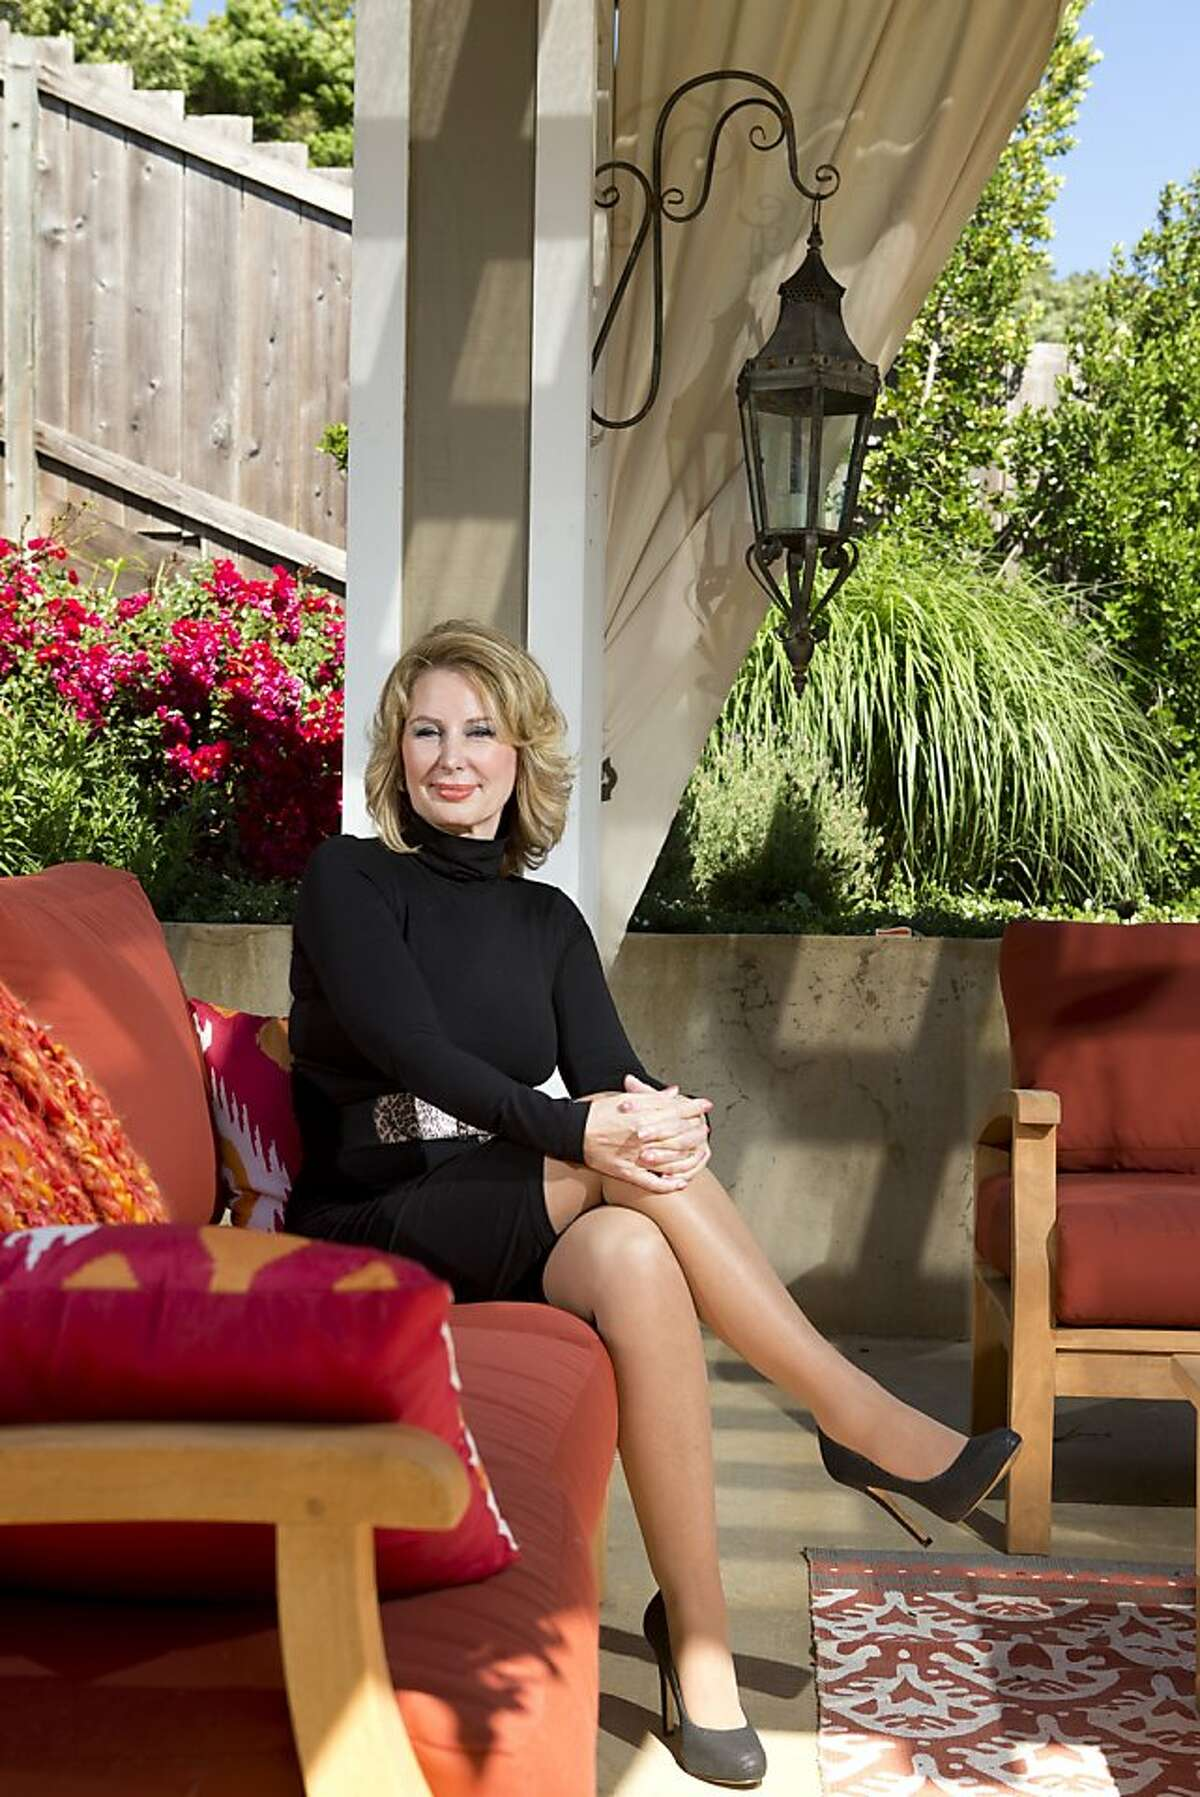 San Francisco radio talk show host Melanie Morgan, and a founder of Tea Part group Move America Forward, believes she was targeted by the IRS. Photographed in her home on Monday, May 13, 2013 in Novato, Calif.